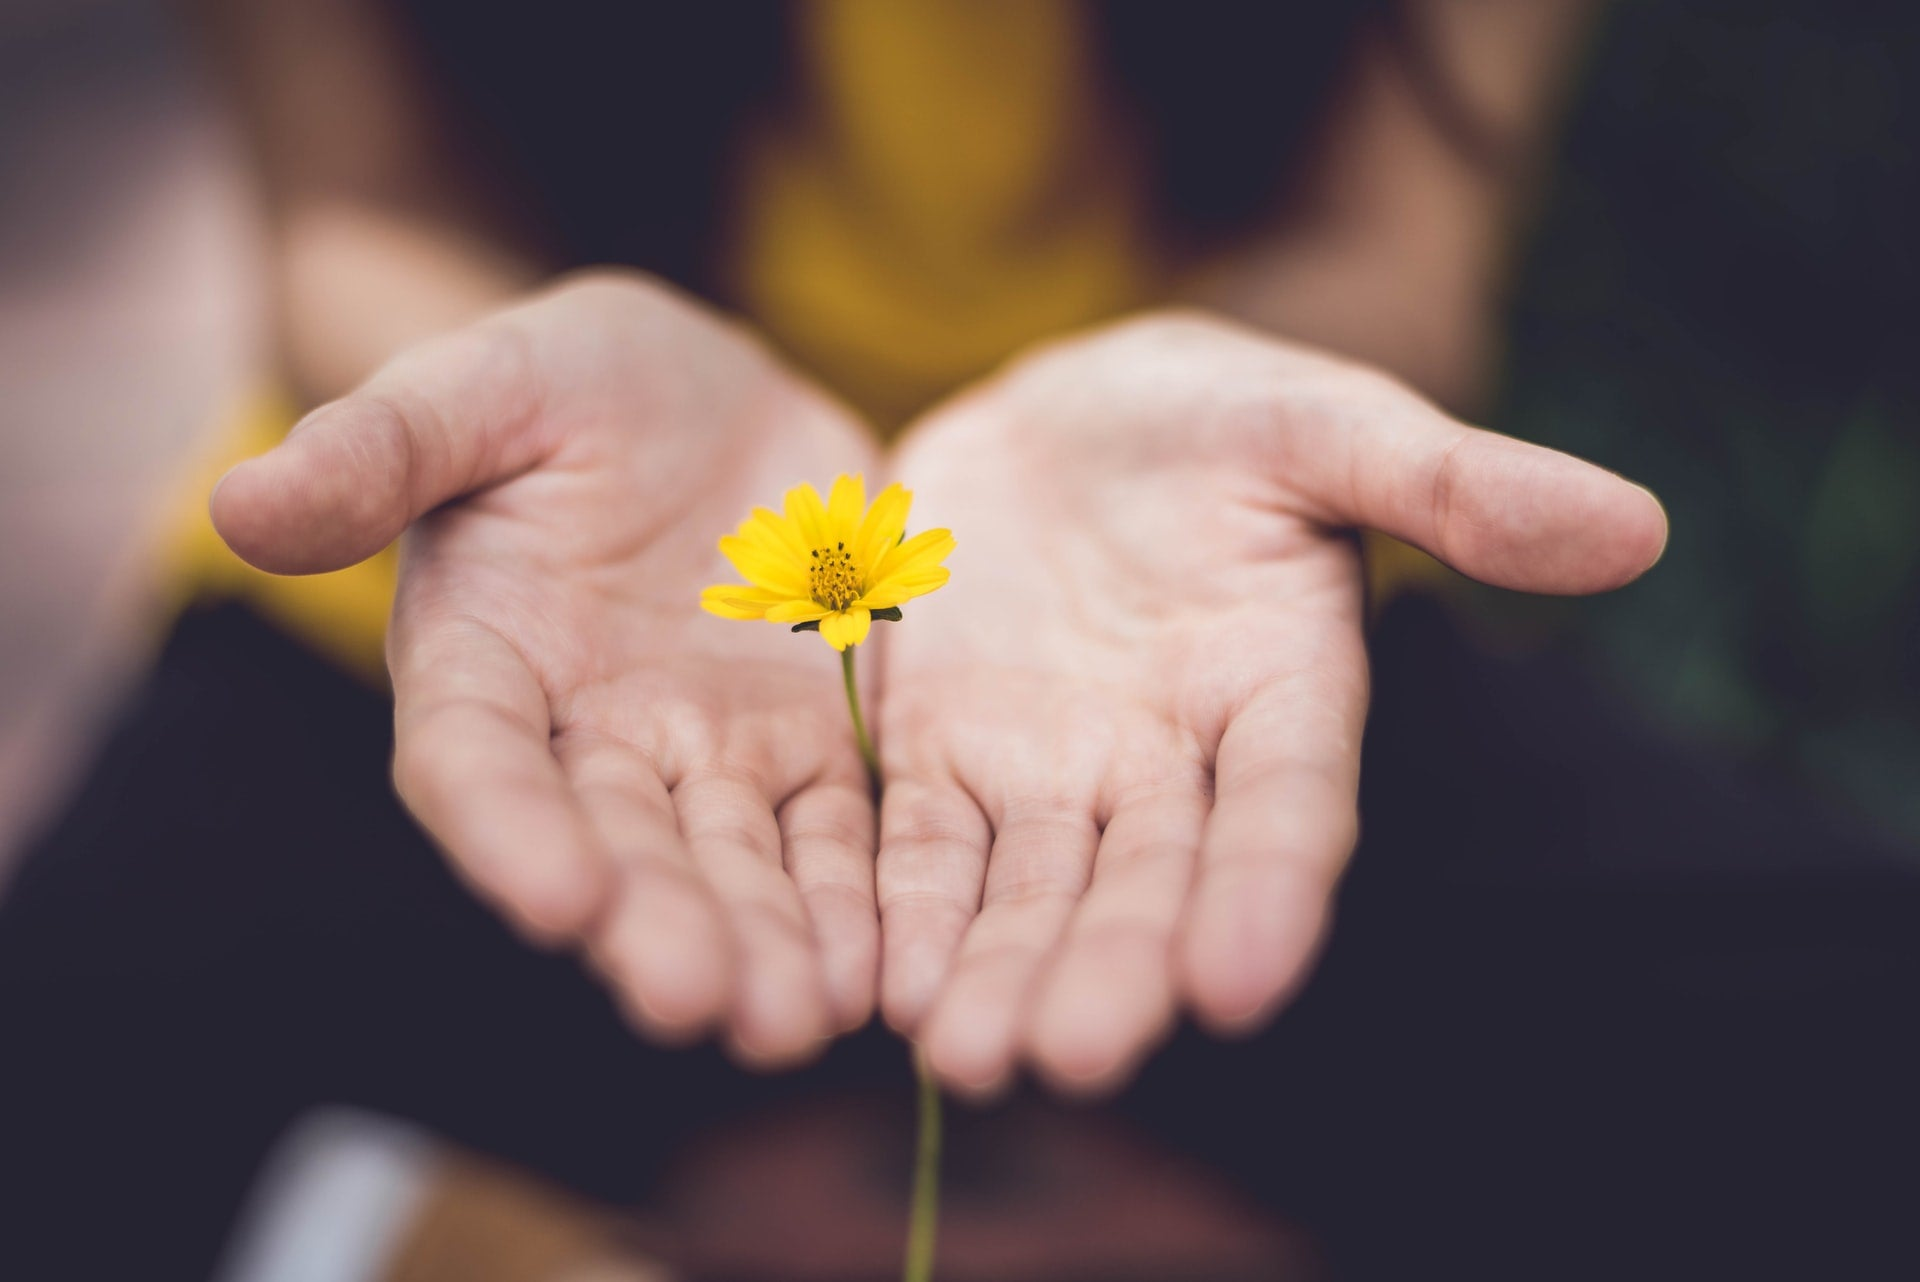 Hand holding out a yellow flower as a gift for someone with anxiety.